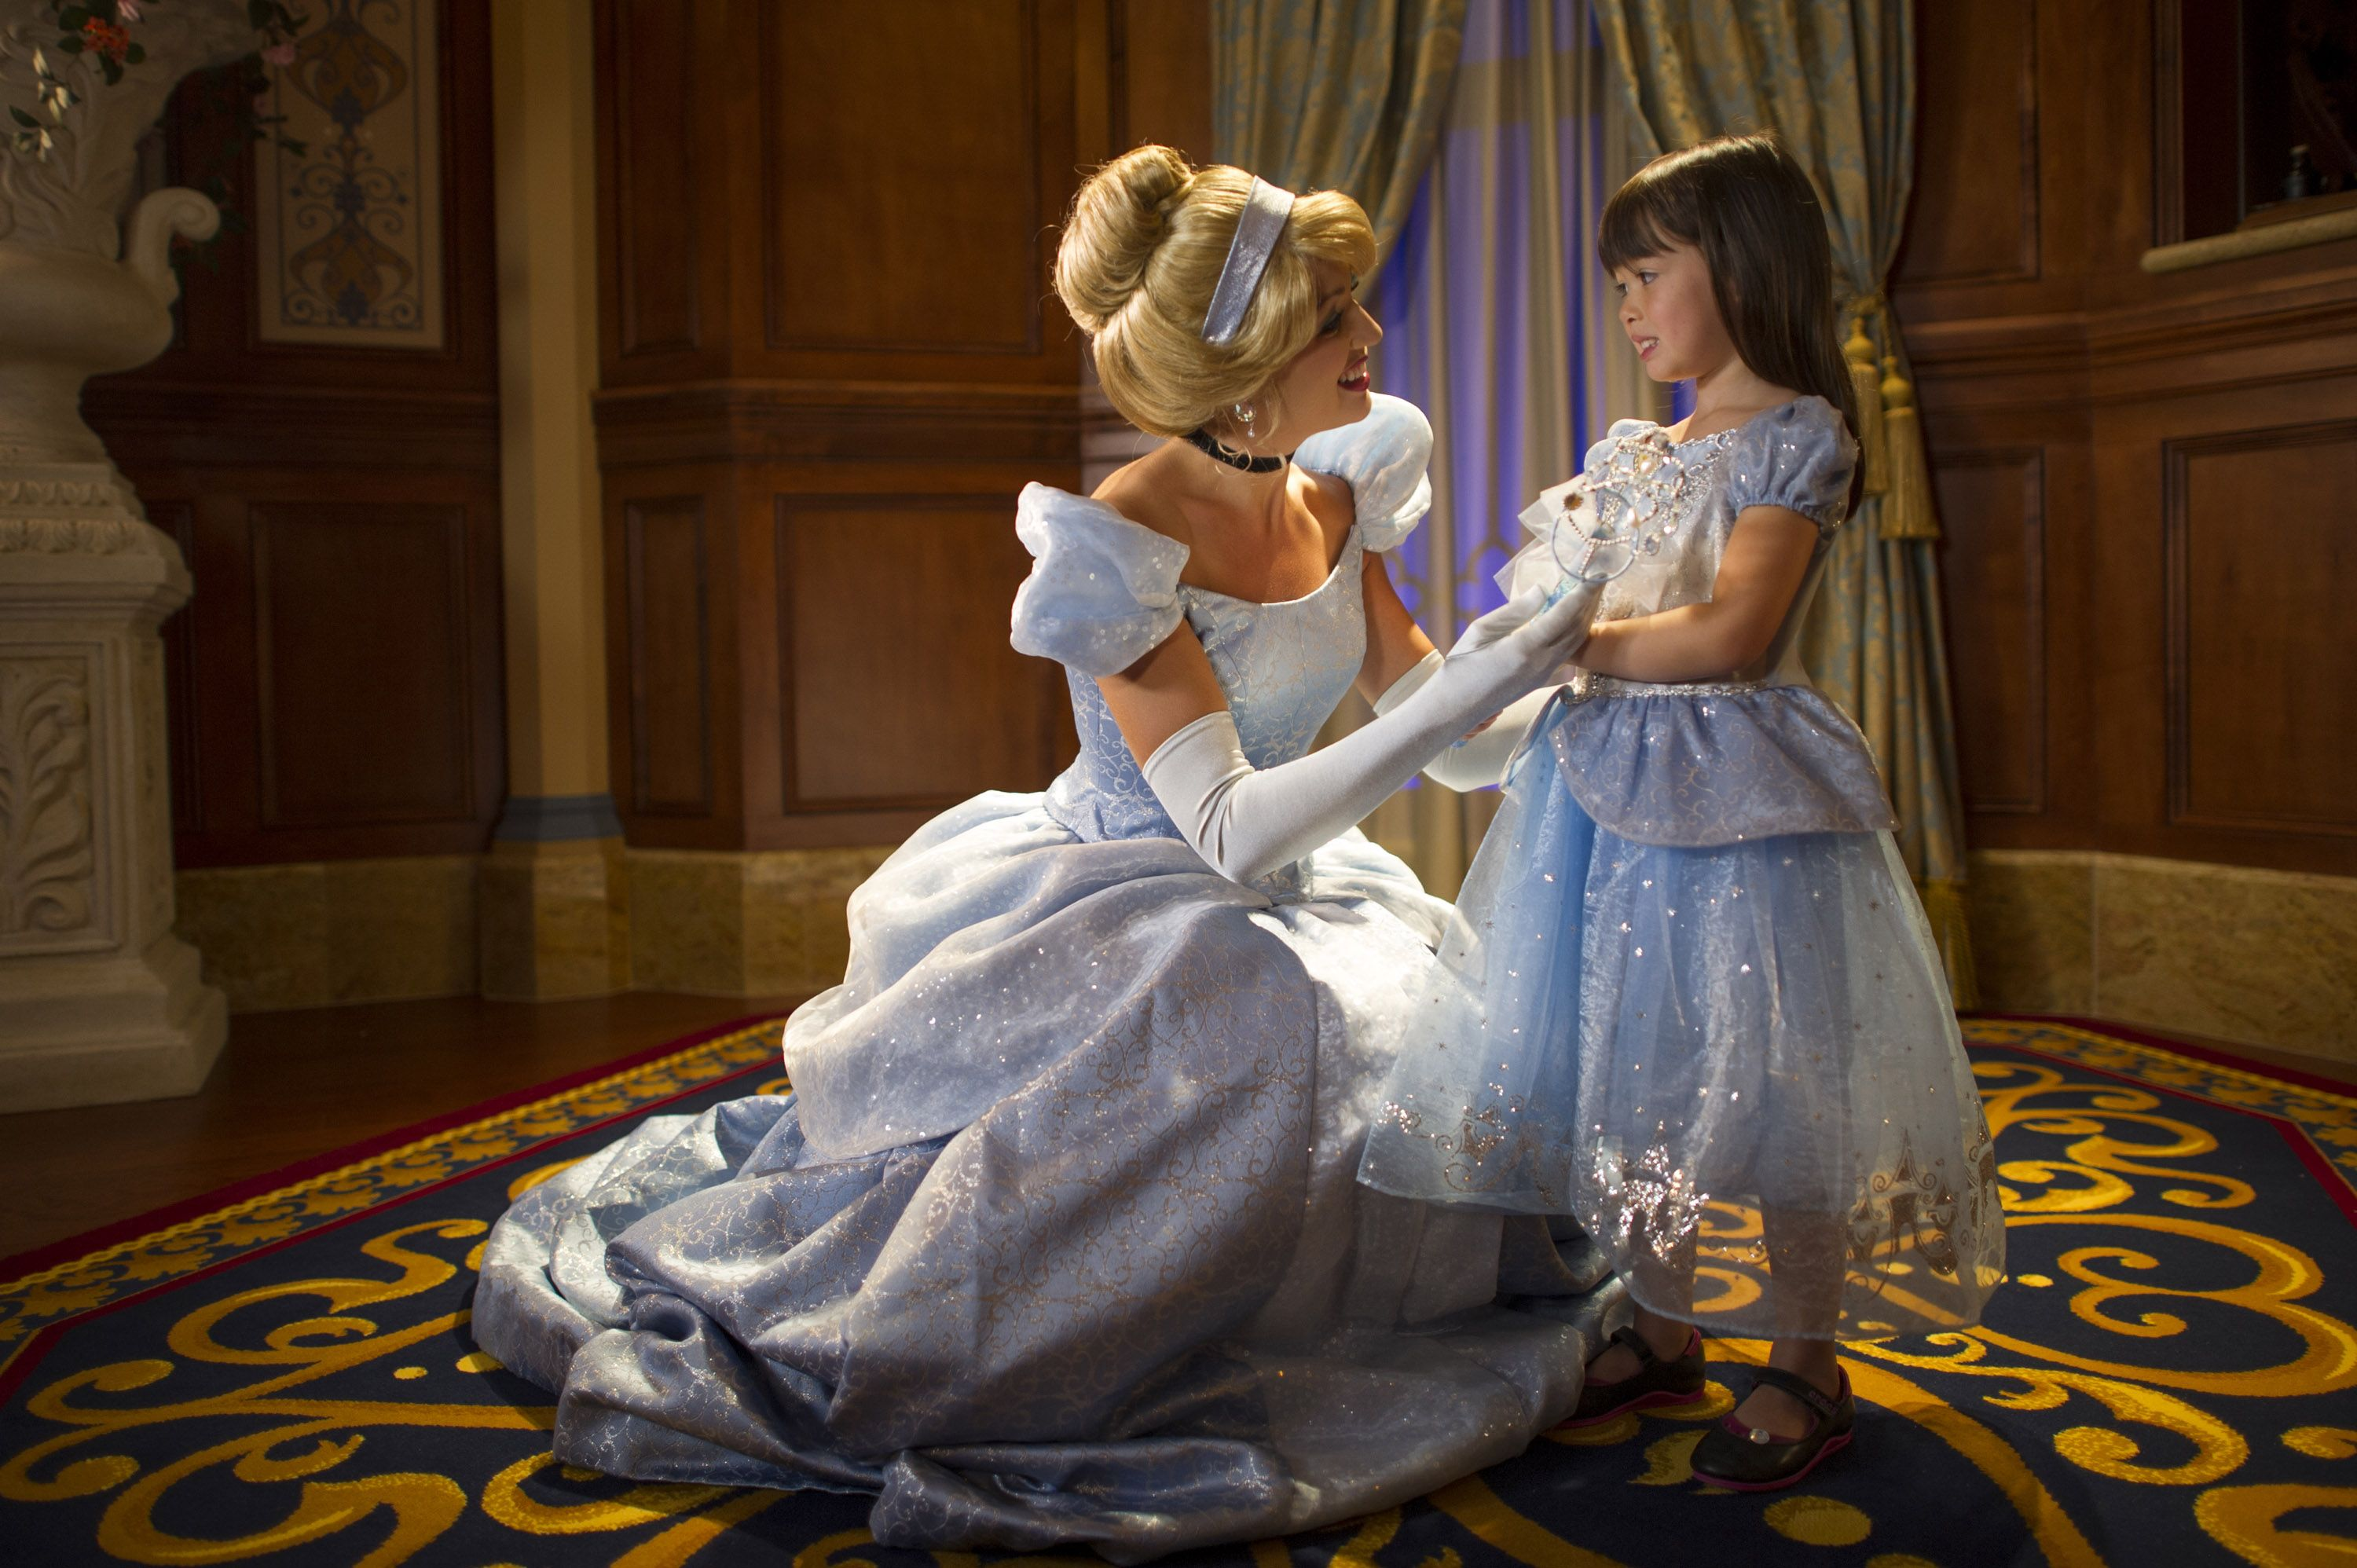 Where to meet Disney princesses at Walt Disney World